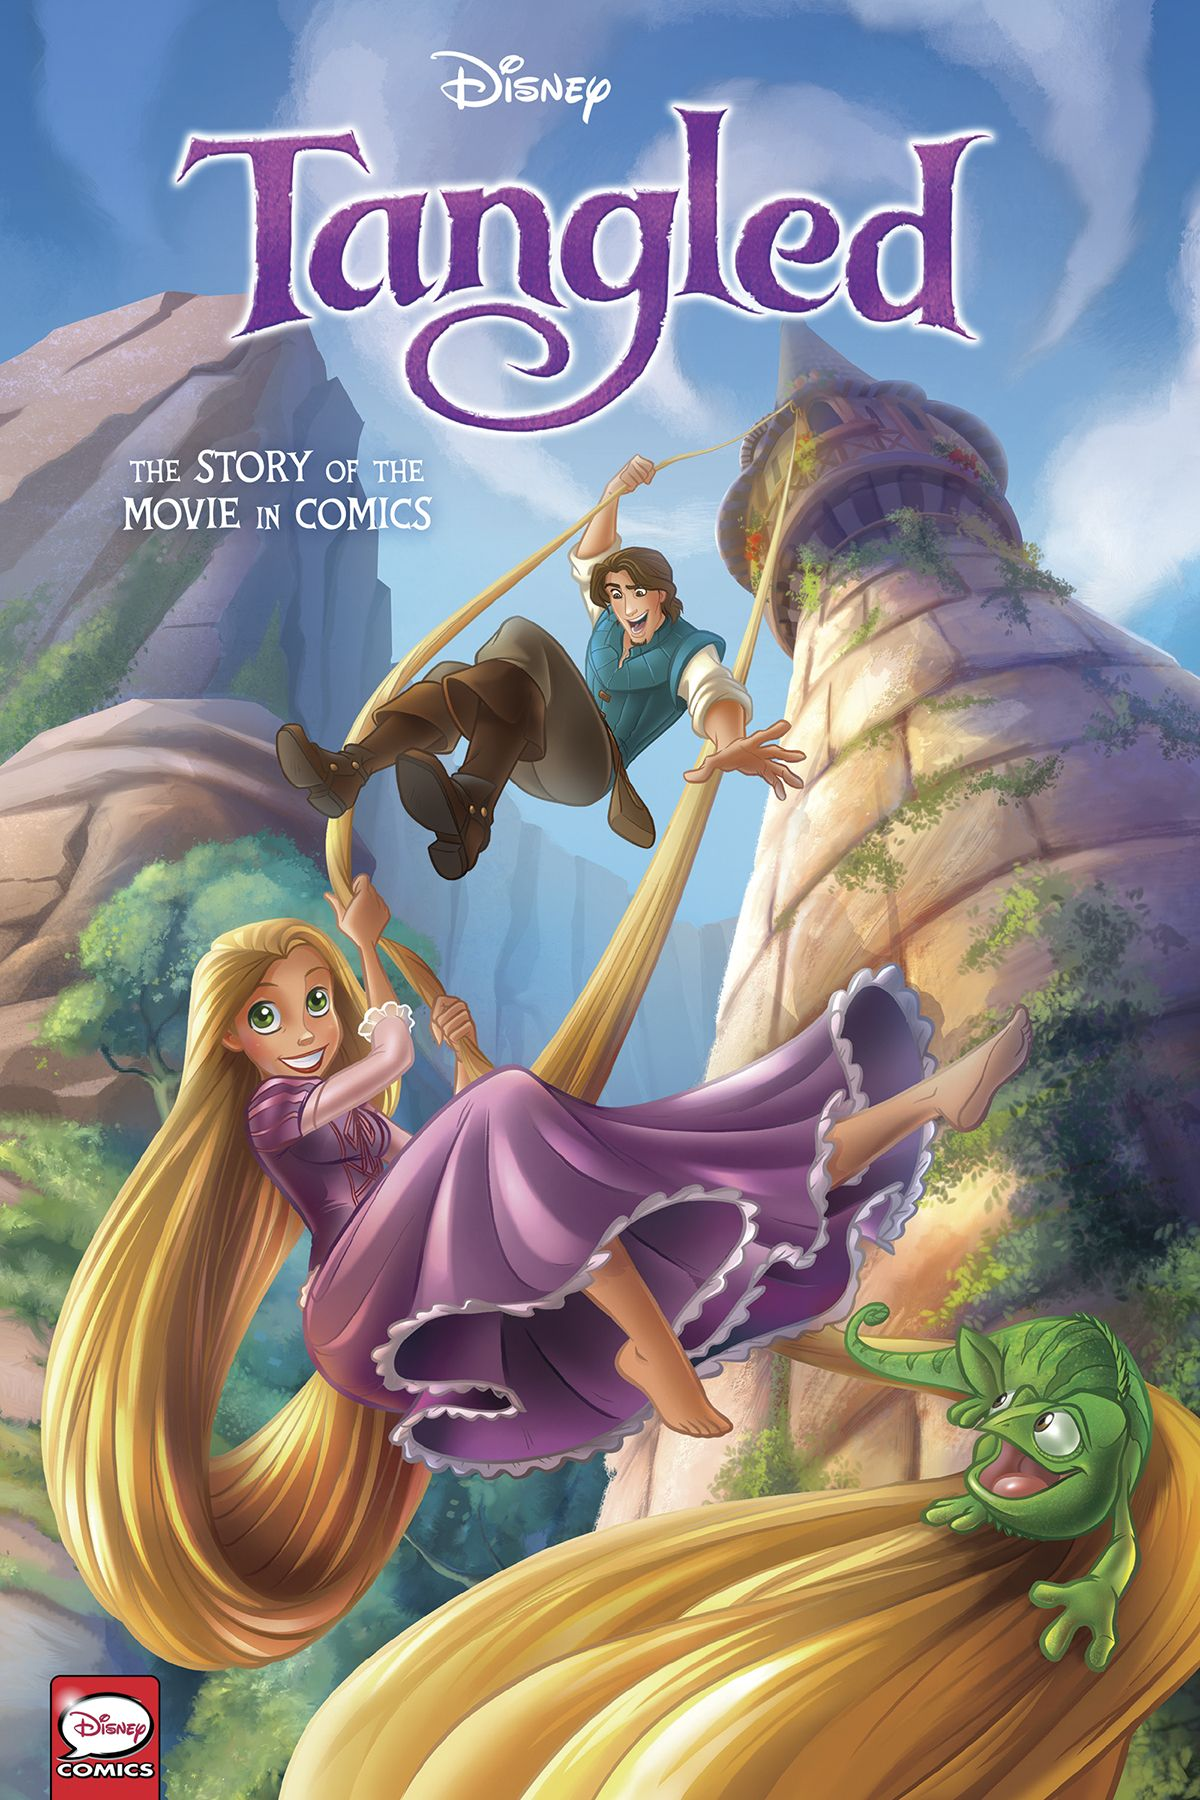 Disney Tangled The Story of the Movie in Comics in 2020